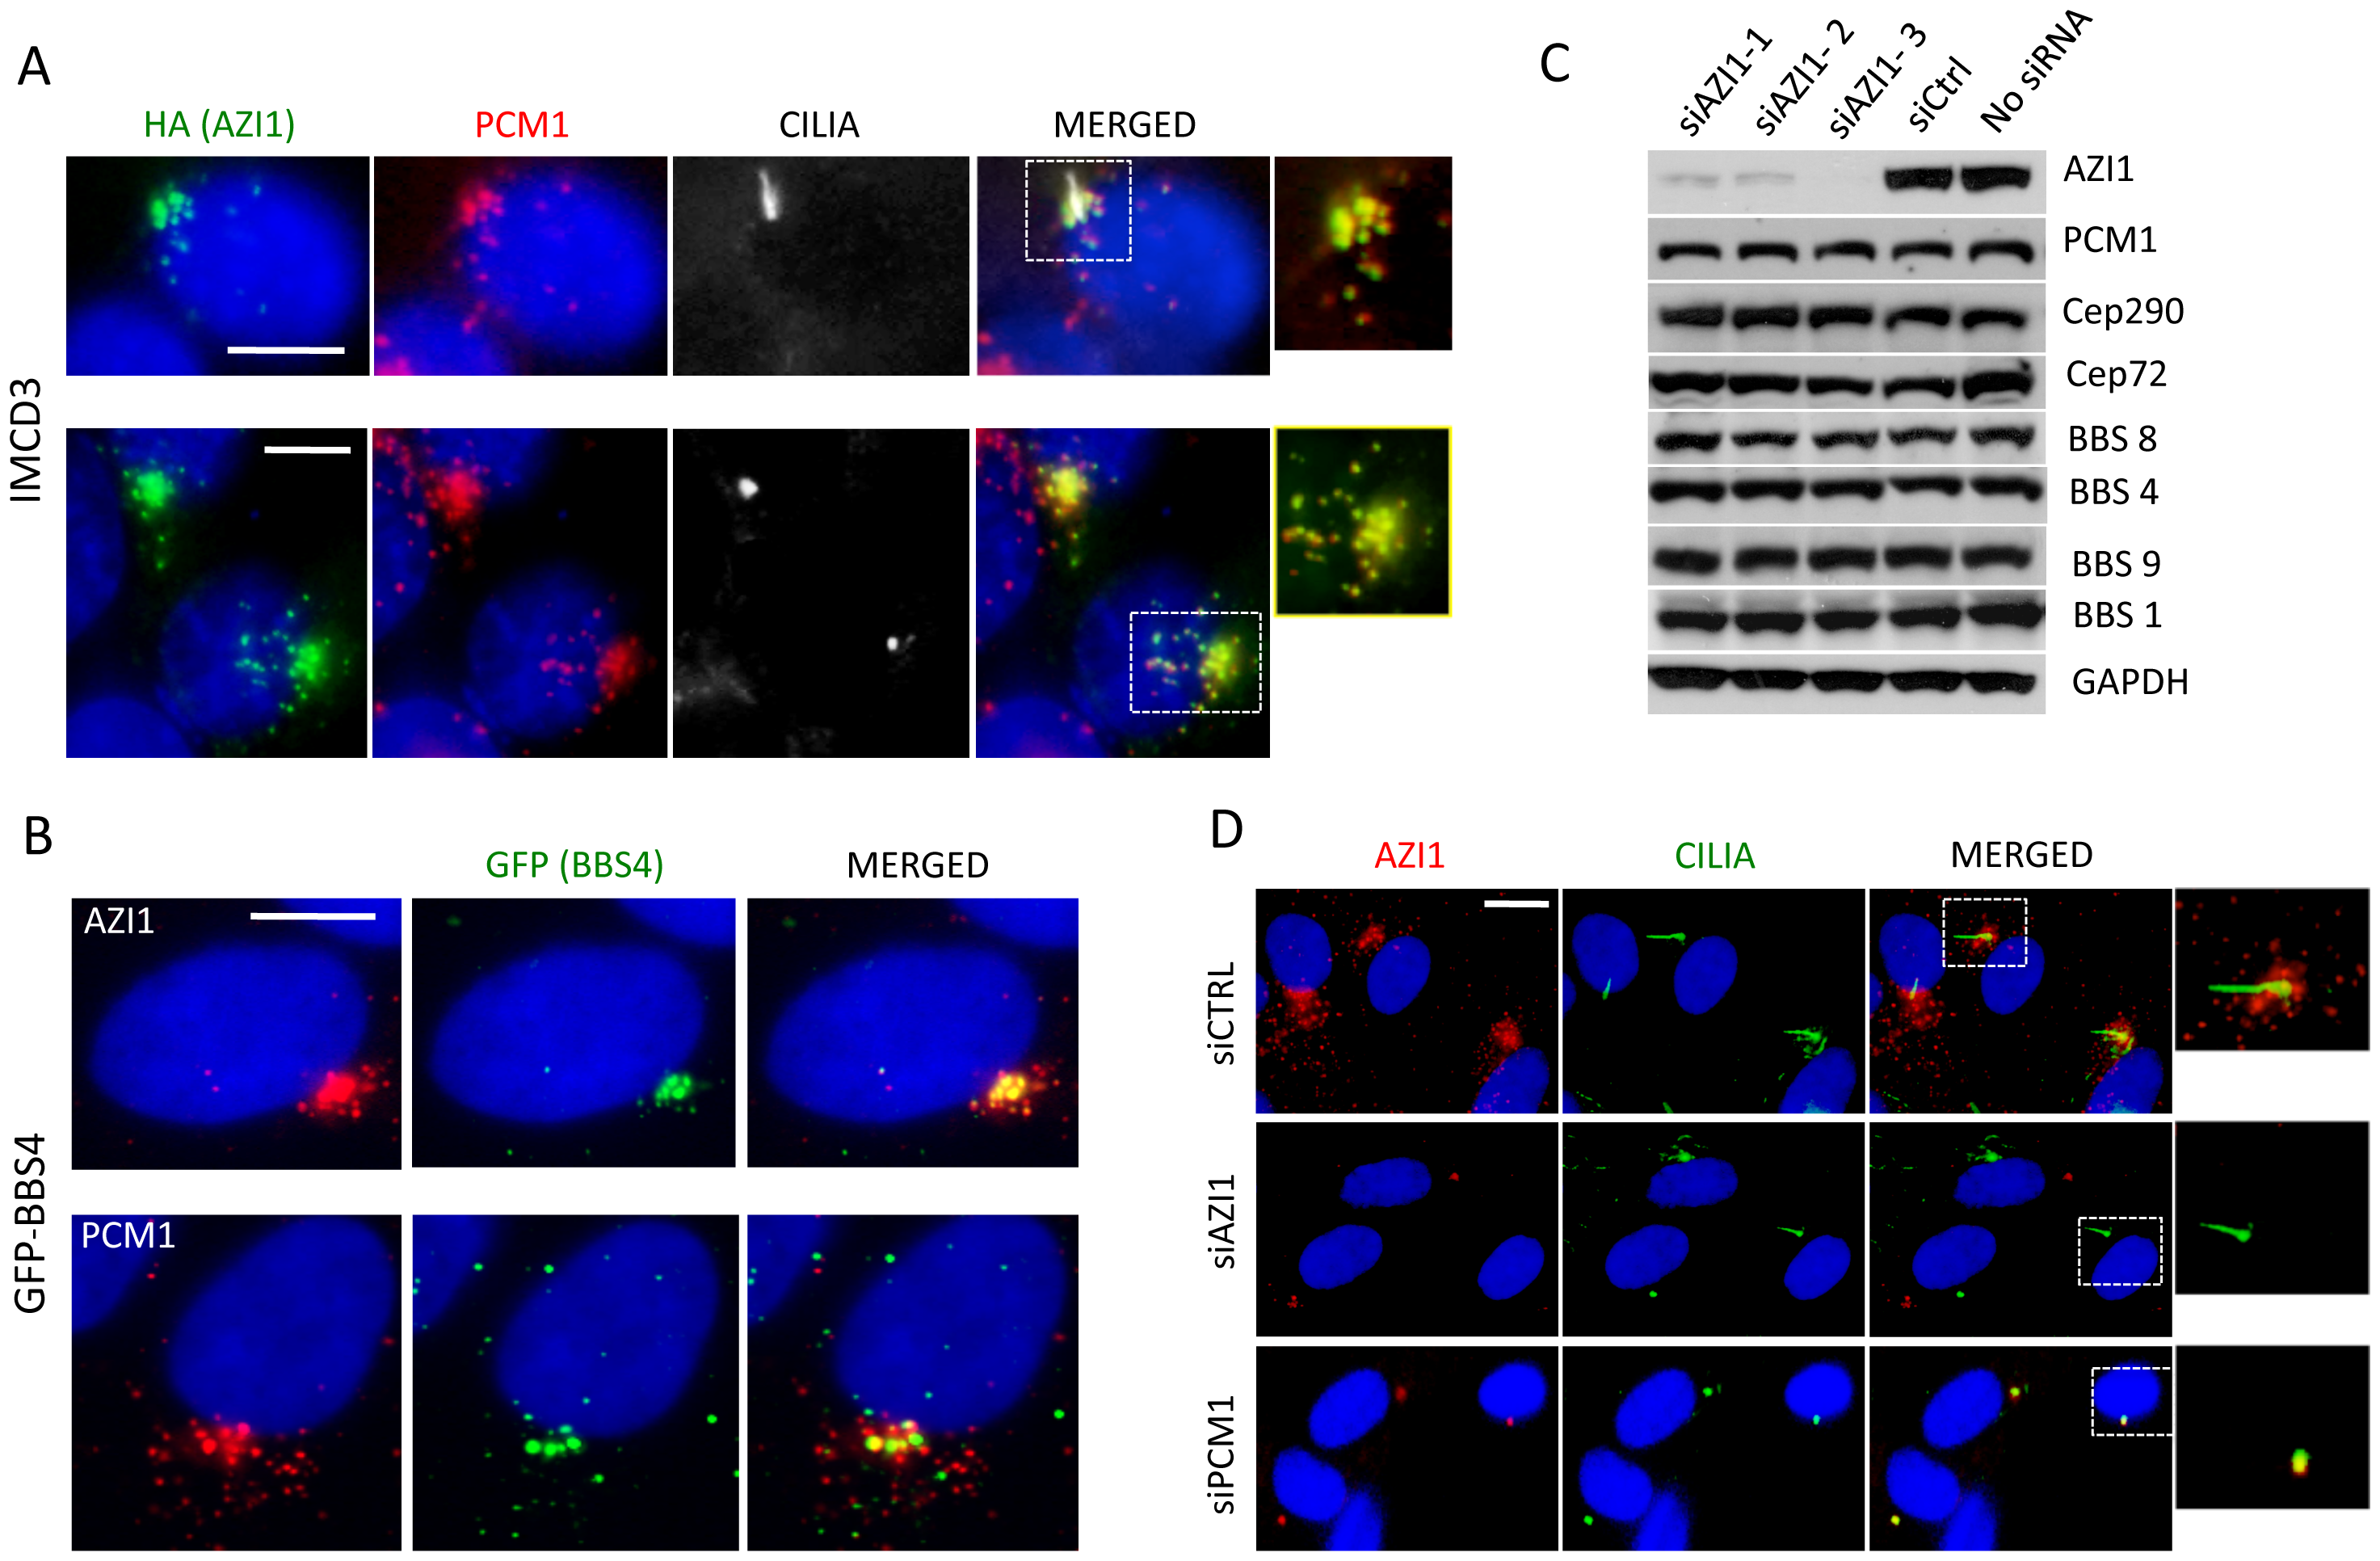 AZI1 co-localizes with BBS4 to the centriolar satellite.